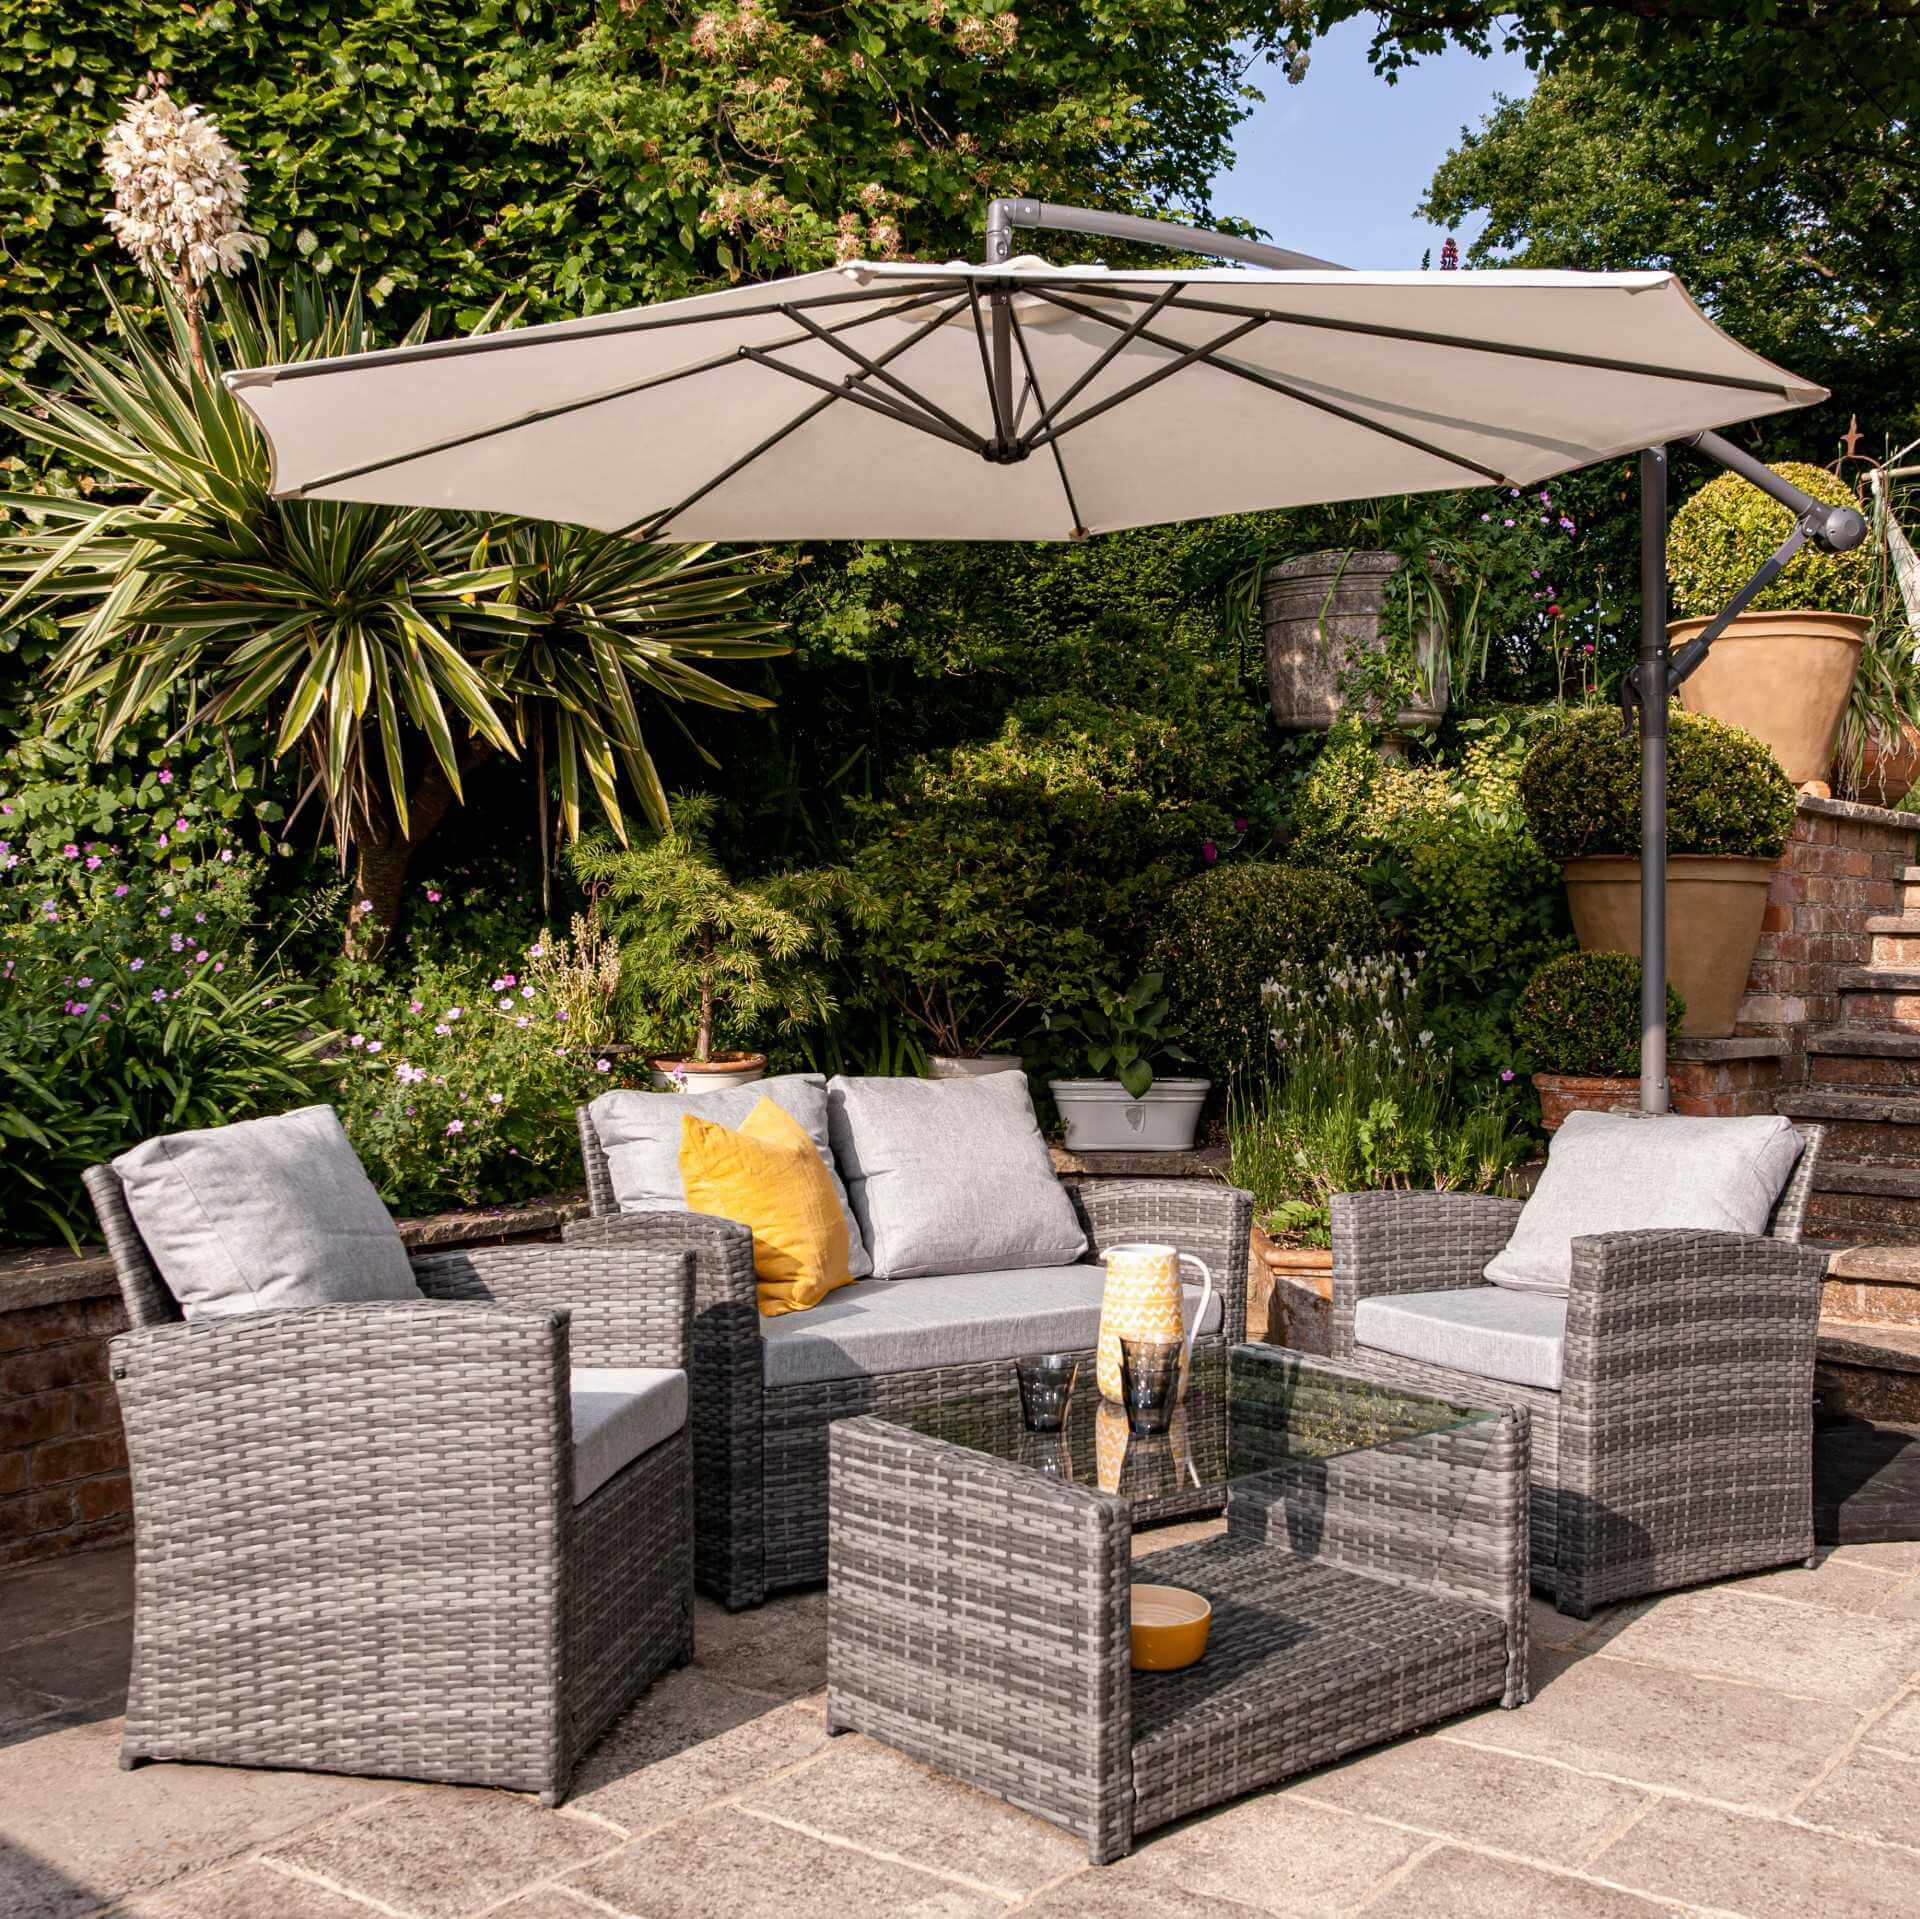 4 Seater Rattan Garden Sofa Set with Lean Over Parasol and Base - Grey Weave - Laura James